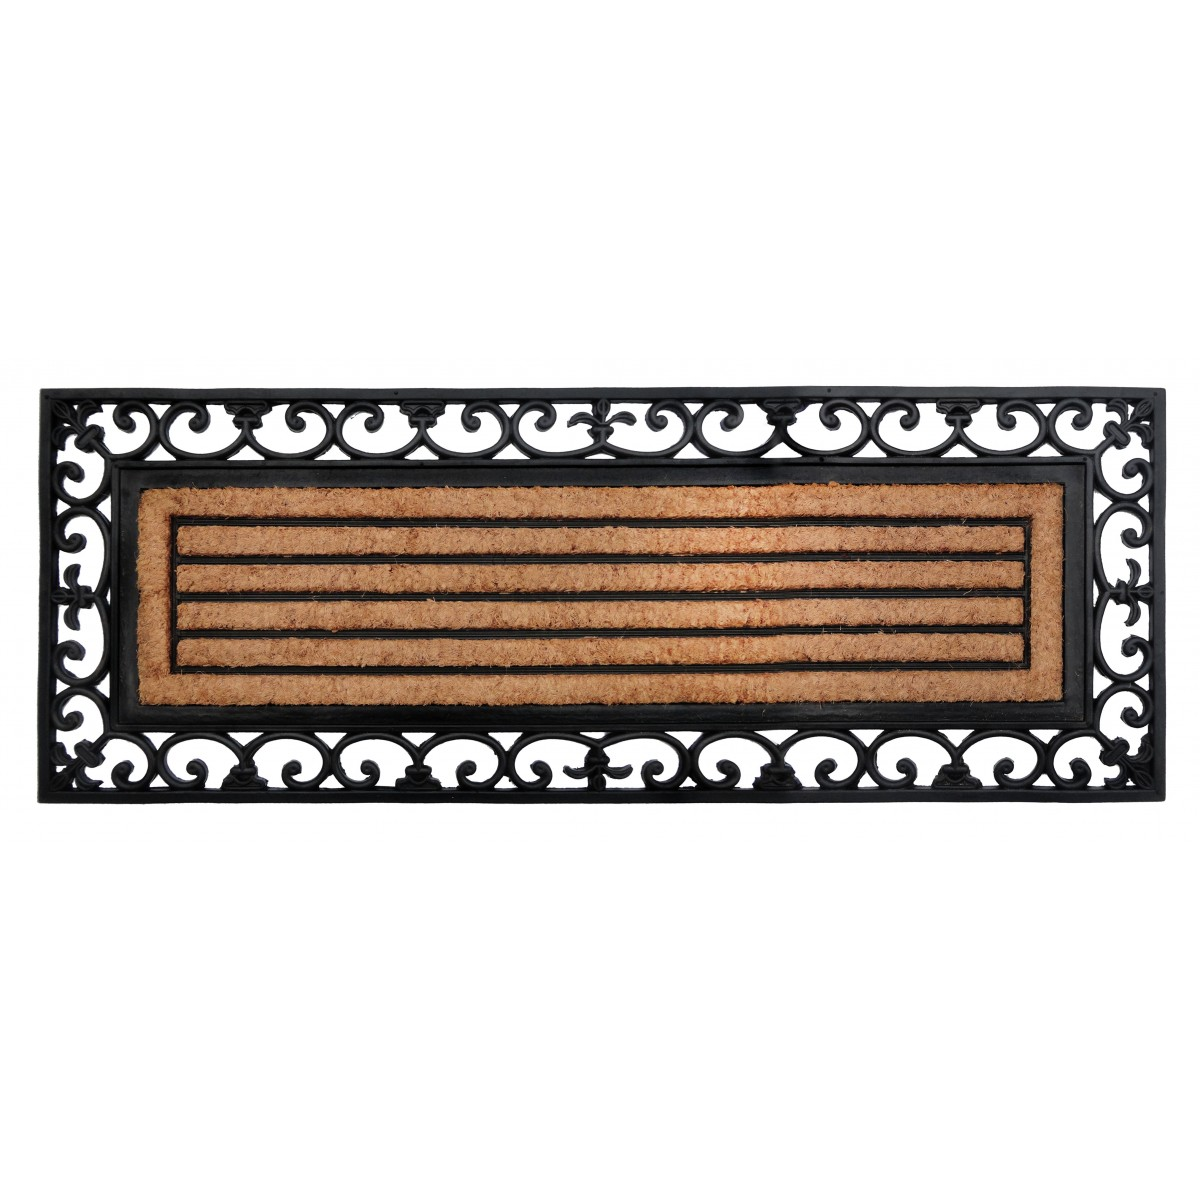 Rubber Bordered Coir Door Mat - Nautica